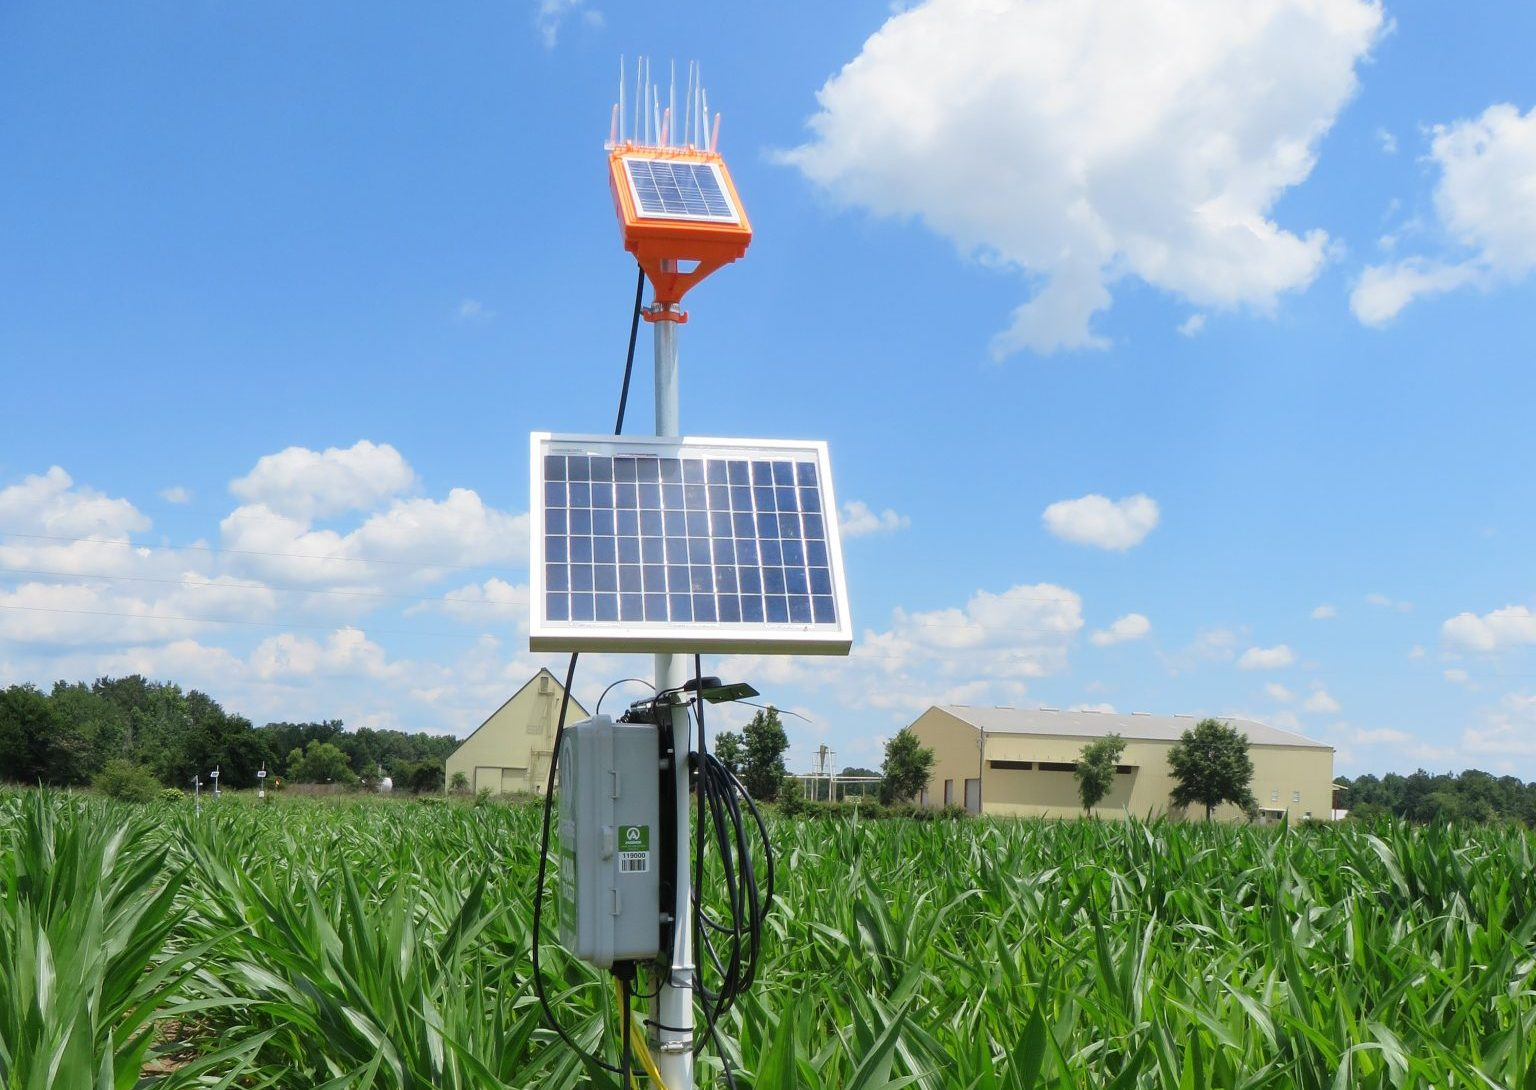 Soil sensors for irrigation scheduling